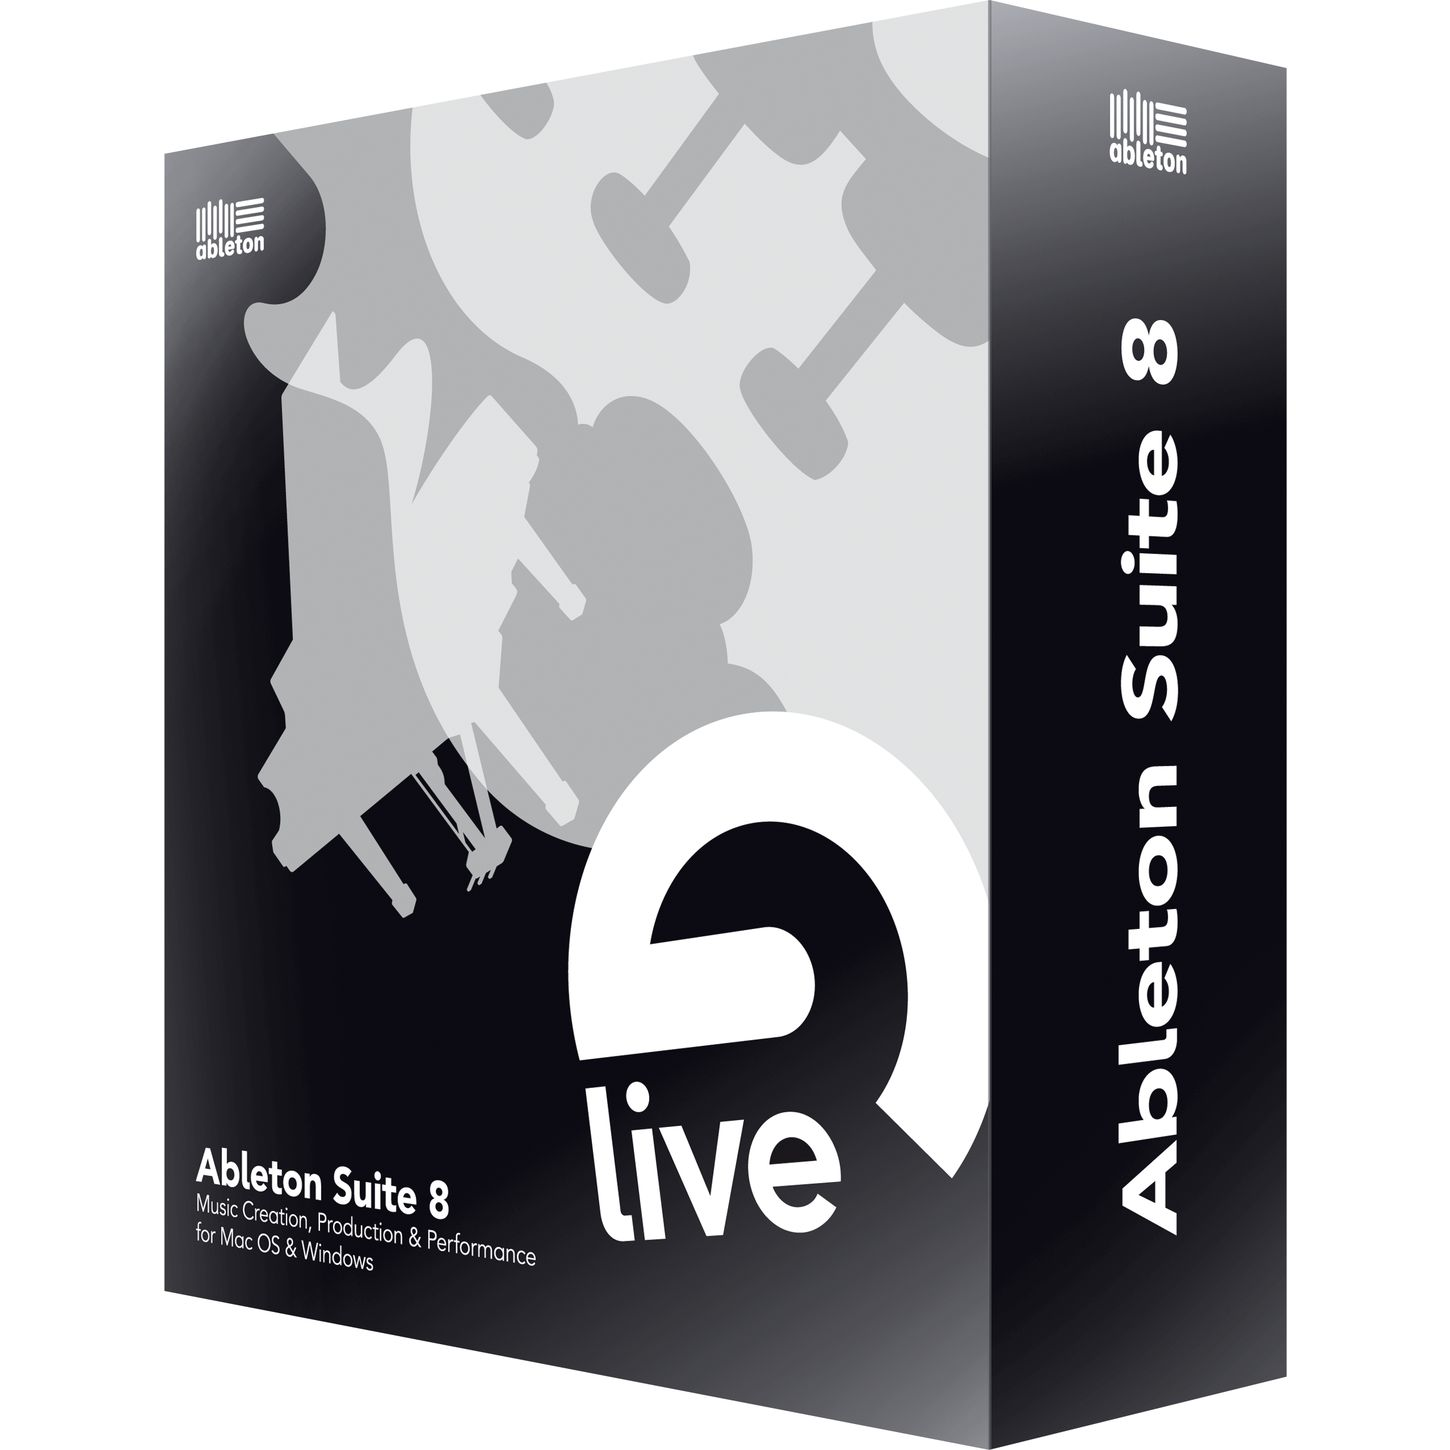 ableton live 8 free download full version pc okadum. Black Bedroom Furniture Sets. Home Design Ideas